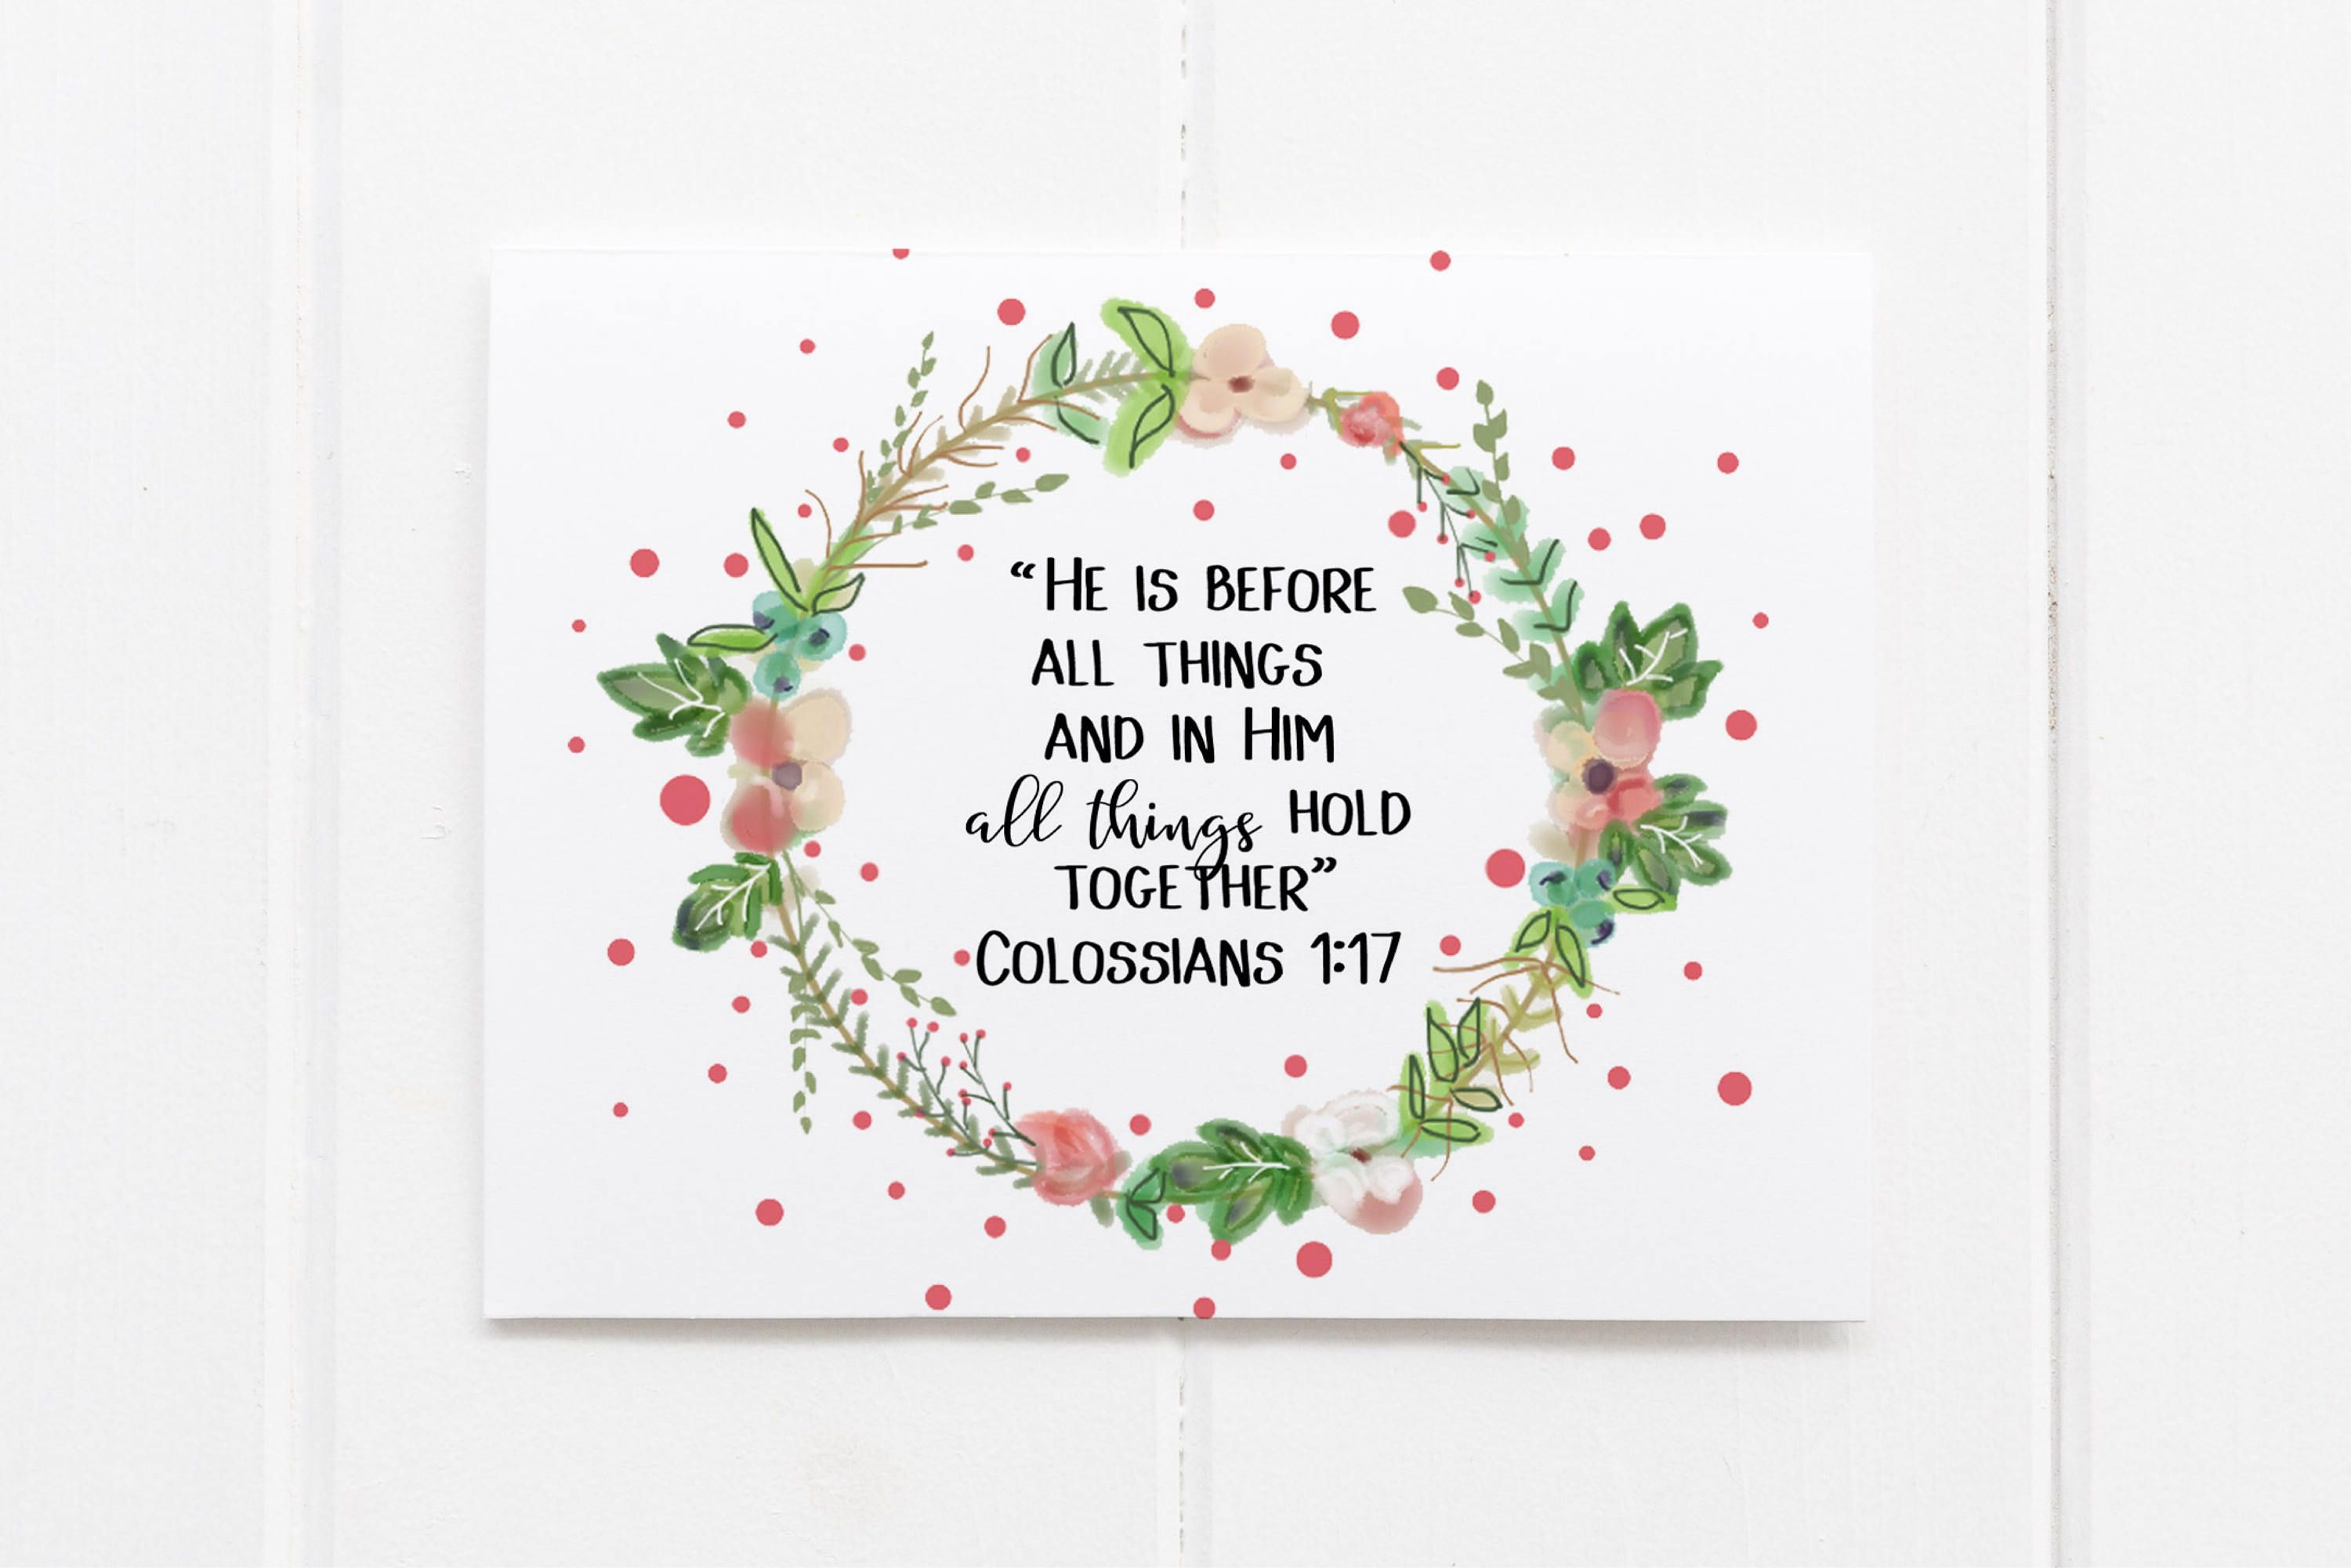 custom greeting card greeting card set with bible verse thinking of you card sympathy card stationary hand drawn christian by elouisedesigns on - Bible Verses For Sympathy Cards